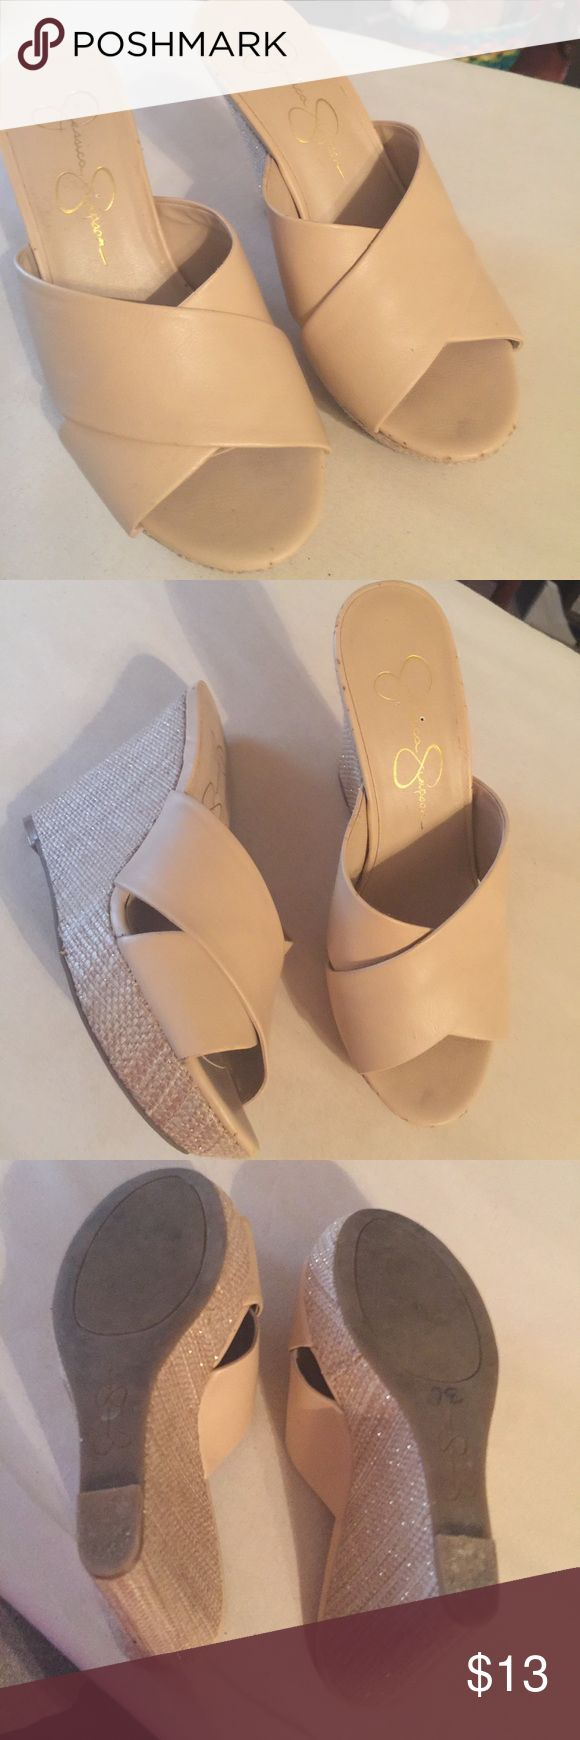 Jessica Simpson wedge shoes Cream colored wedges Jessica Simpson Shoes Wedges